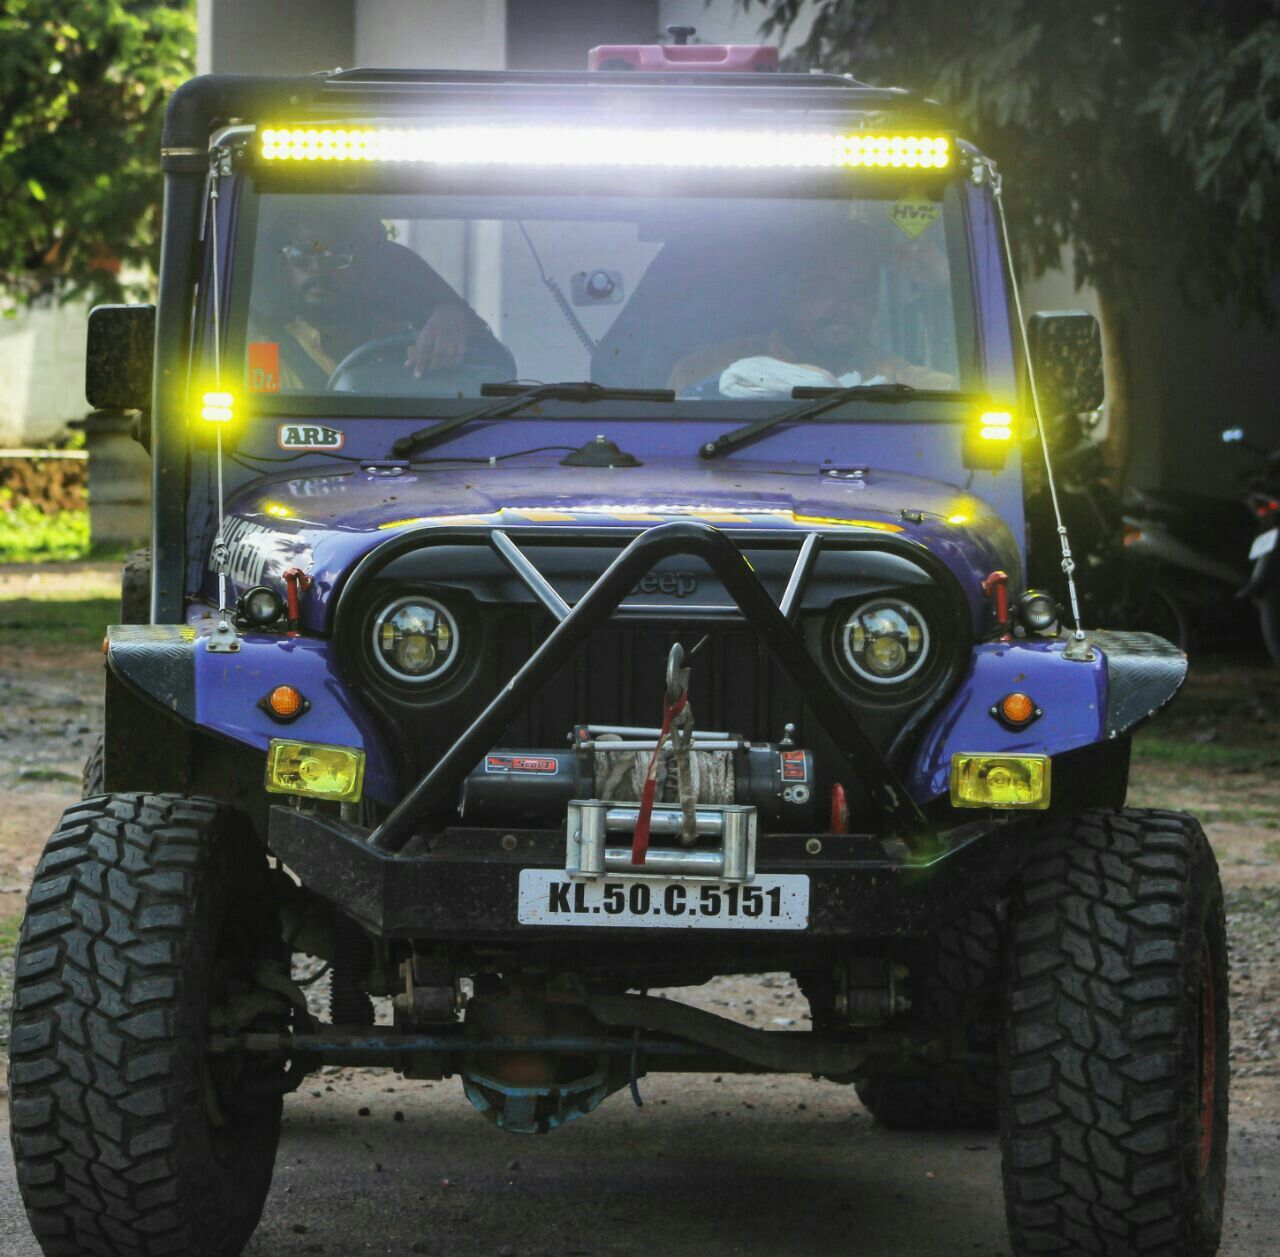 My Mahindra Cj340 Jeep